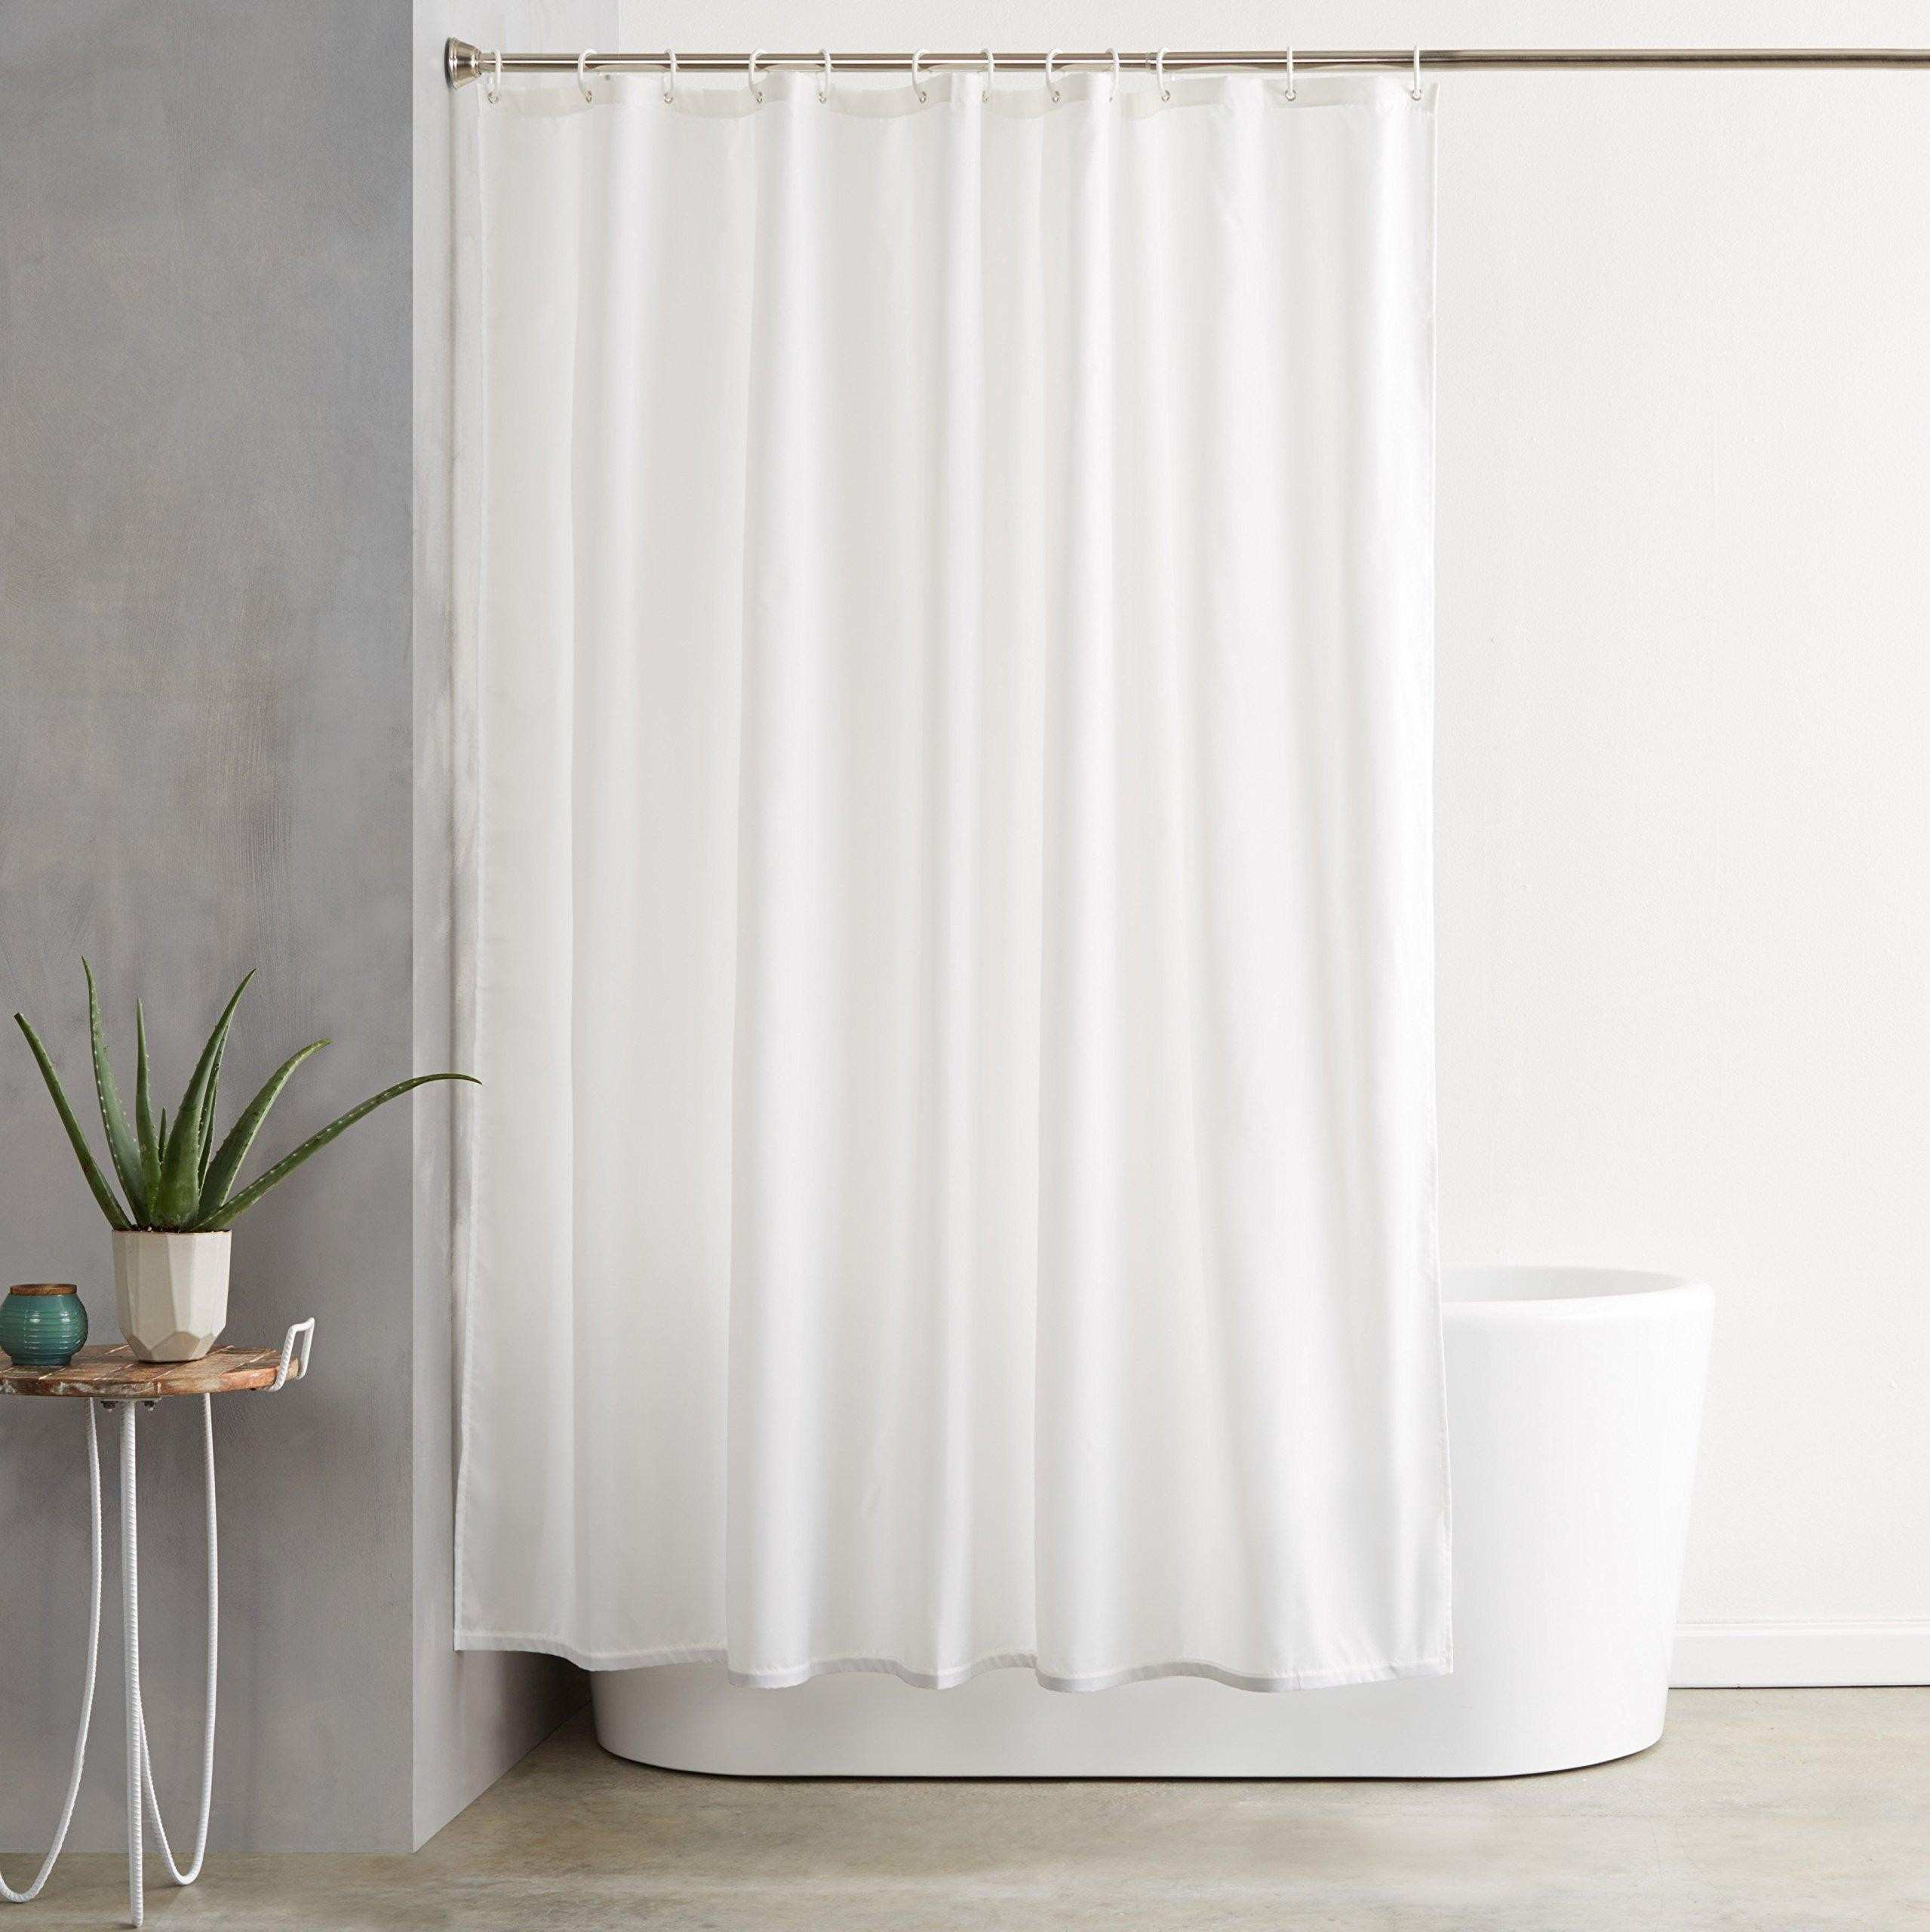 25 Cool Ideas Shower Curtain and Window Curtain Set